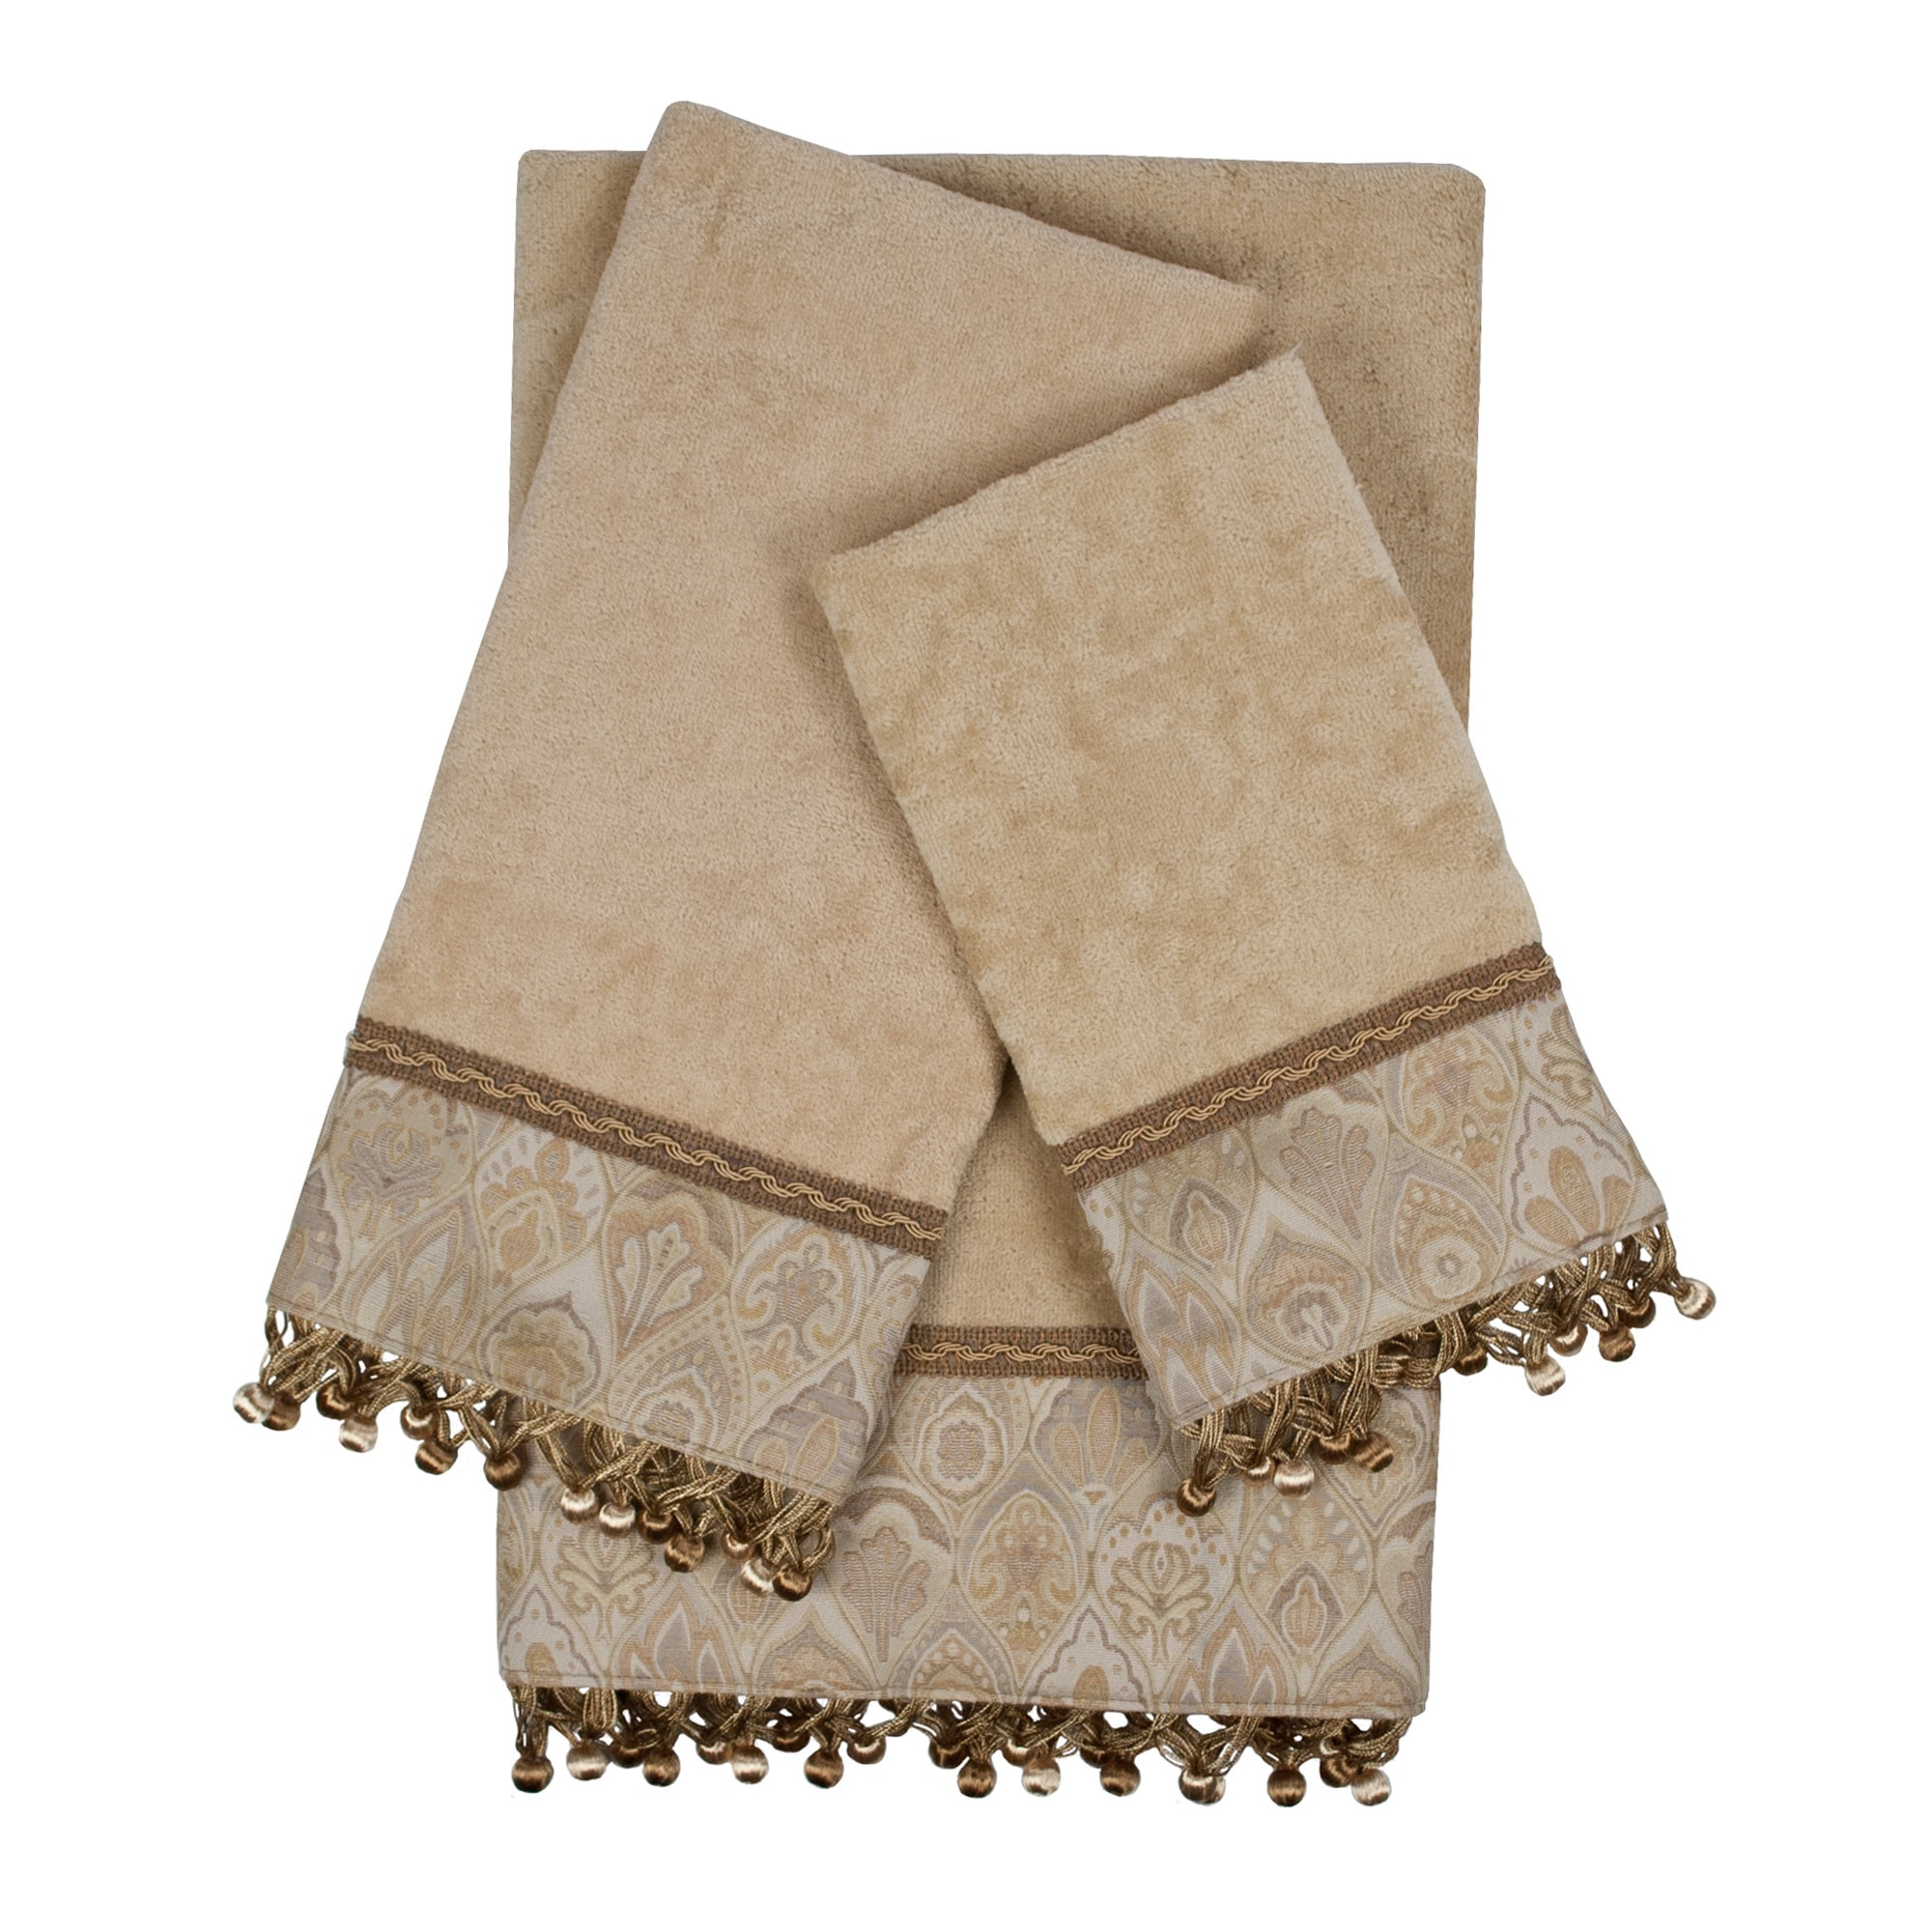 Sherry Kline  Mandalay Taupe Decorative Embellished Towel Set